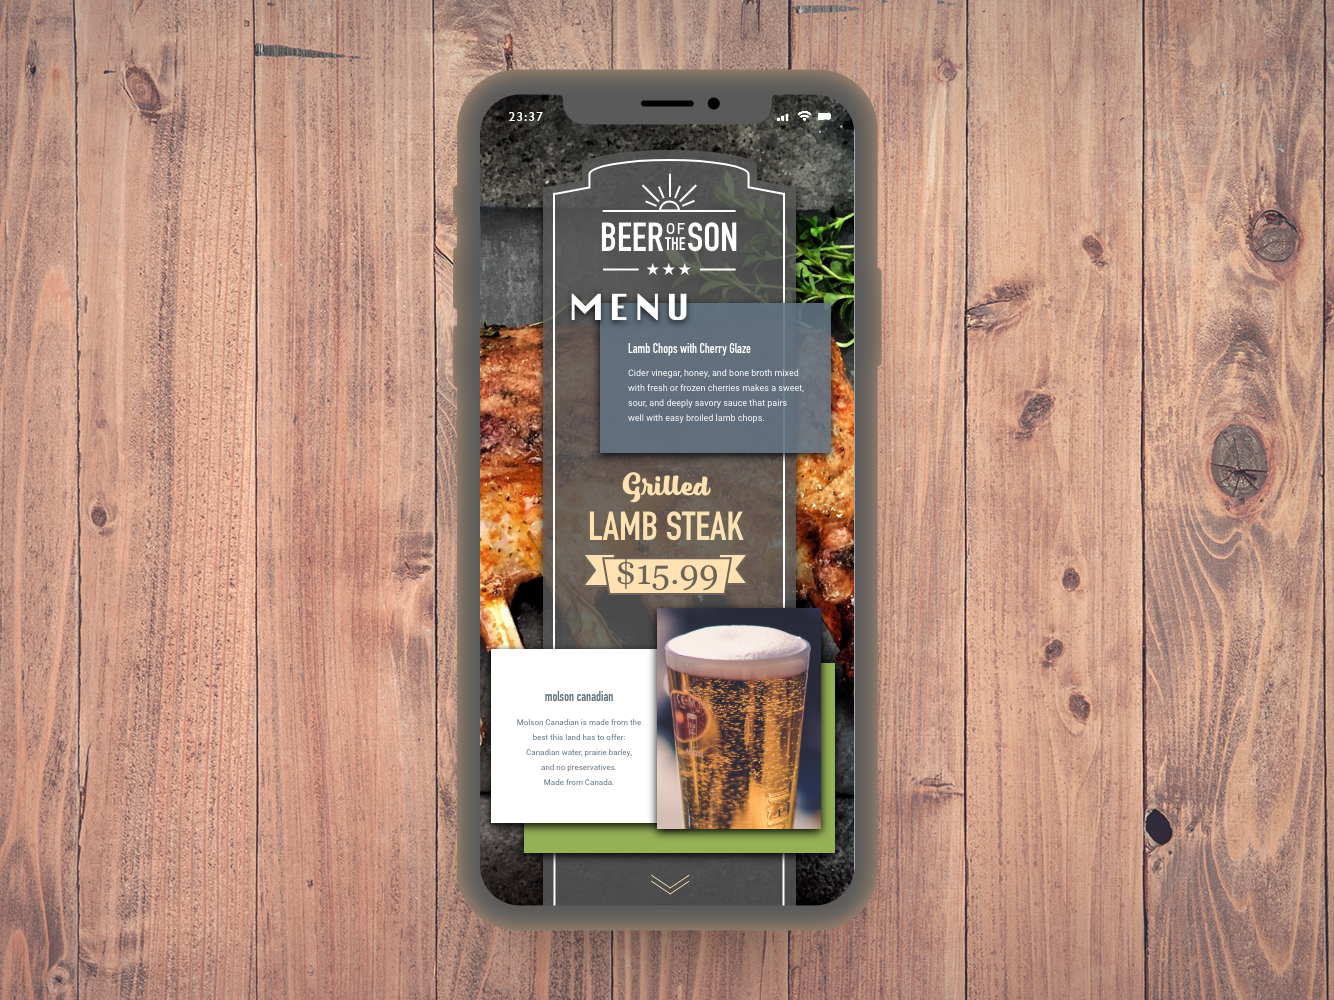 Food/Drink Menu photoshop ui design ux xd